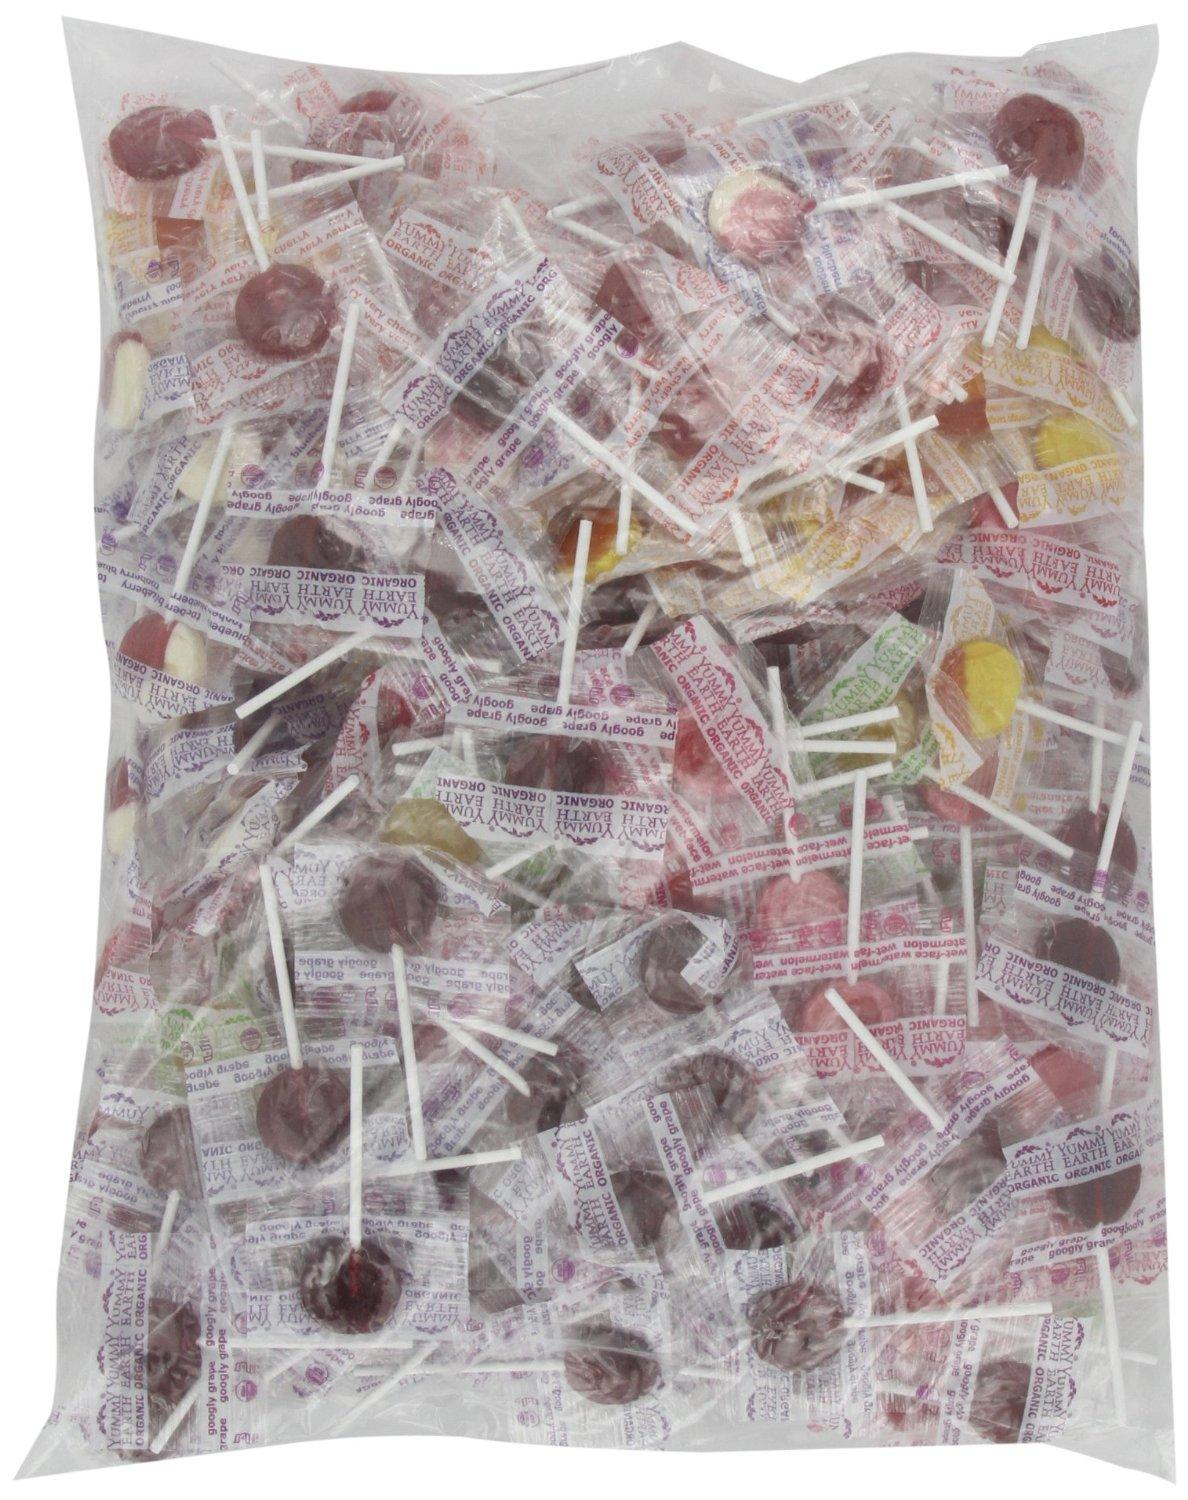 YumEarth Organic Lollipops, 5 Pound Bag